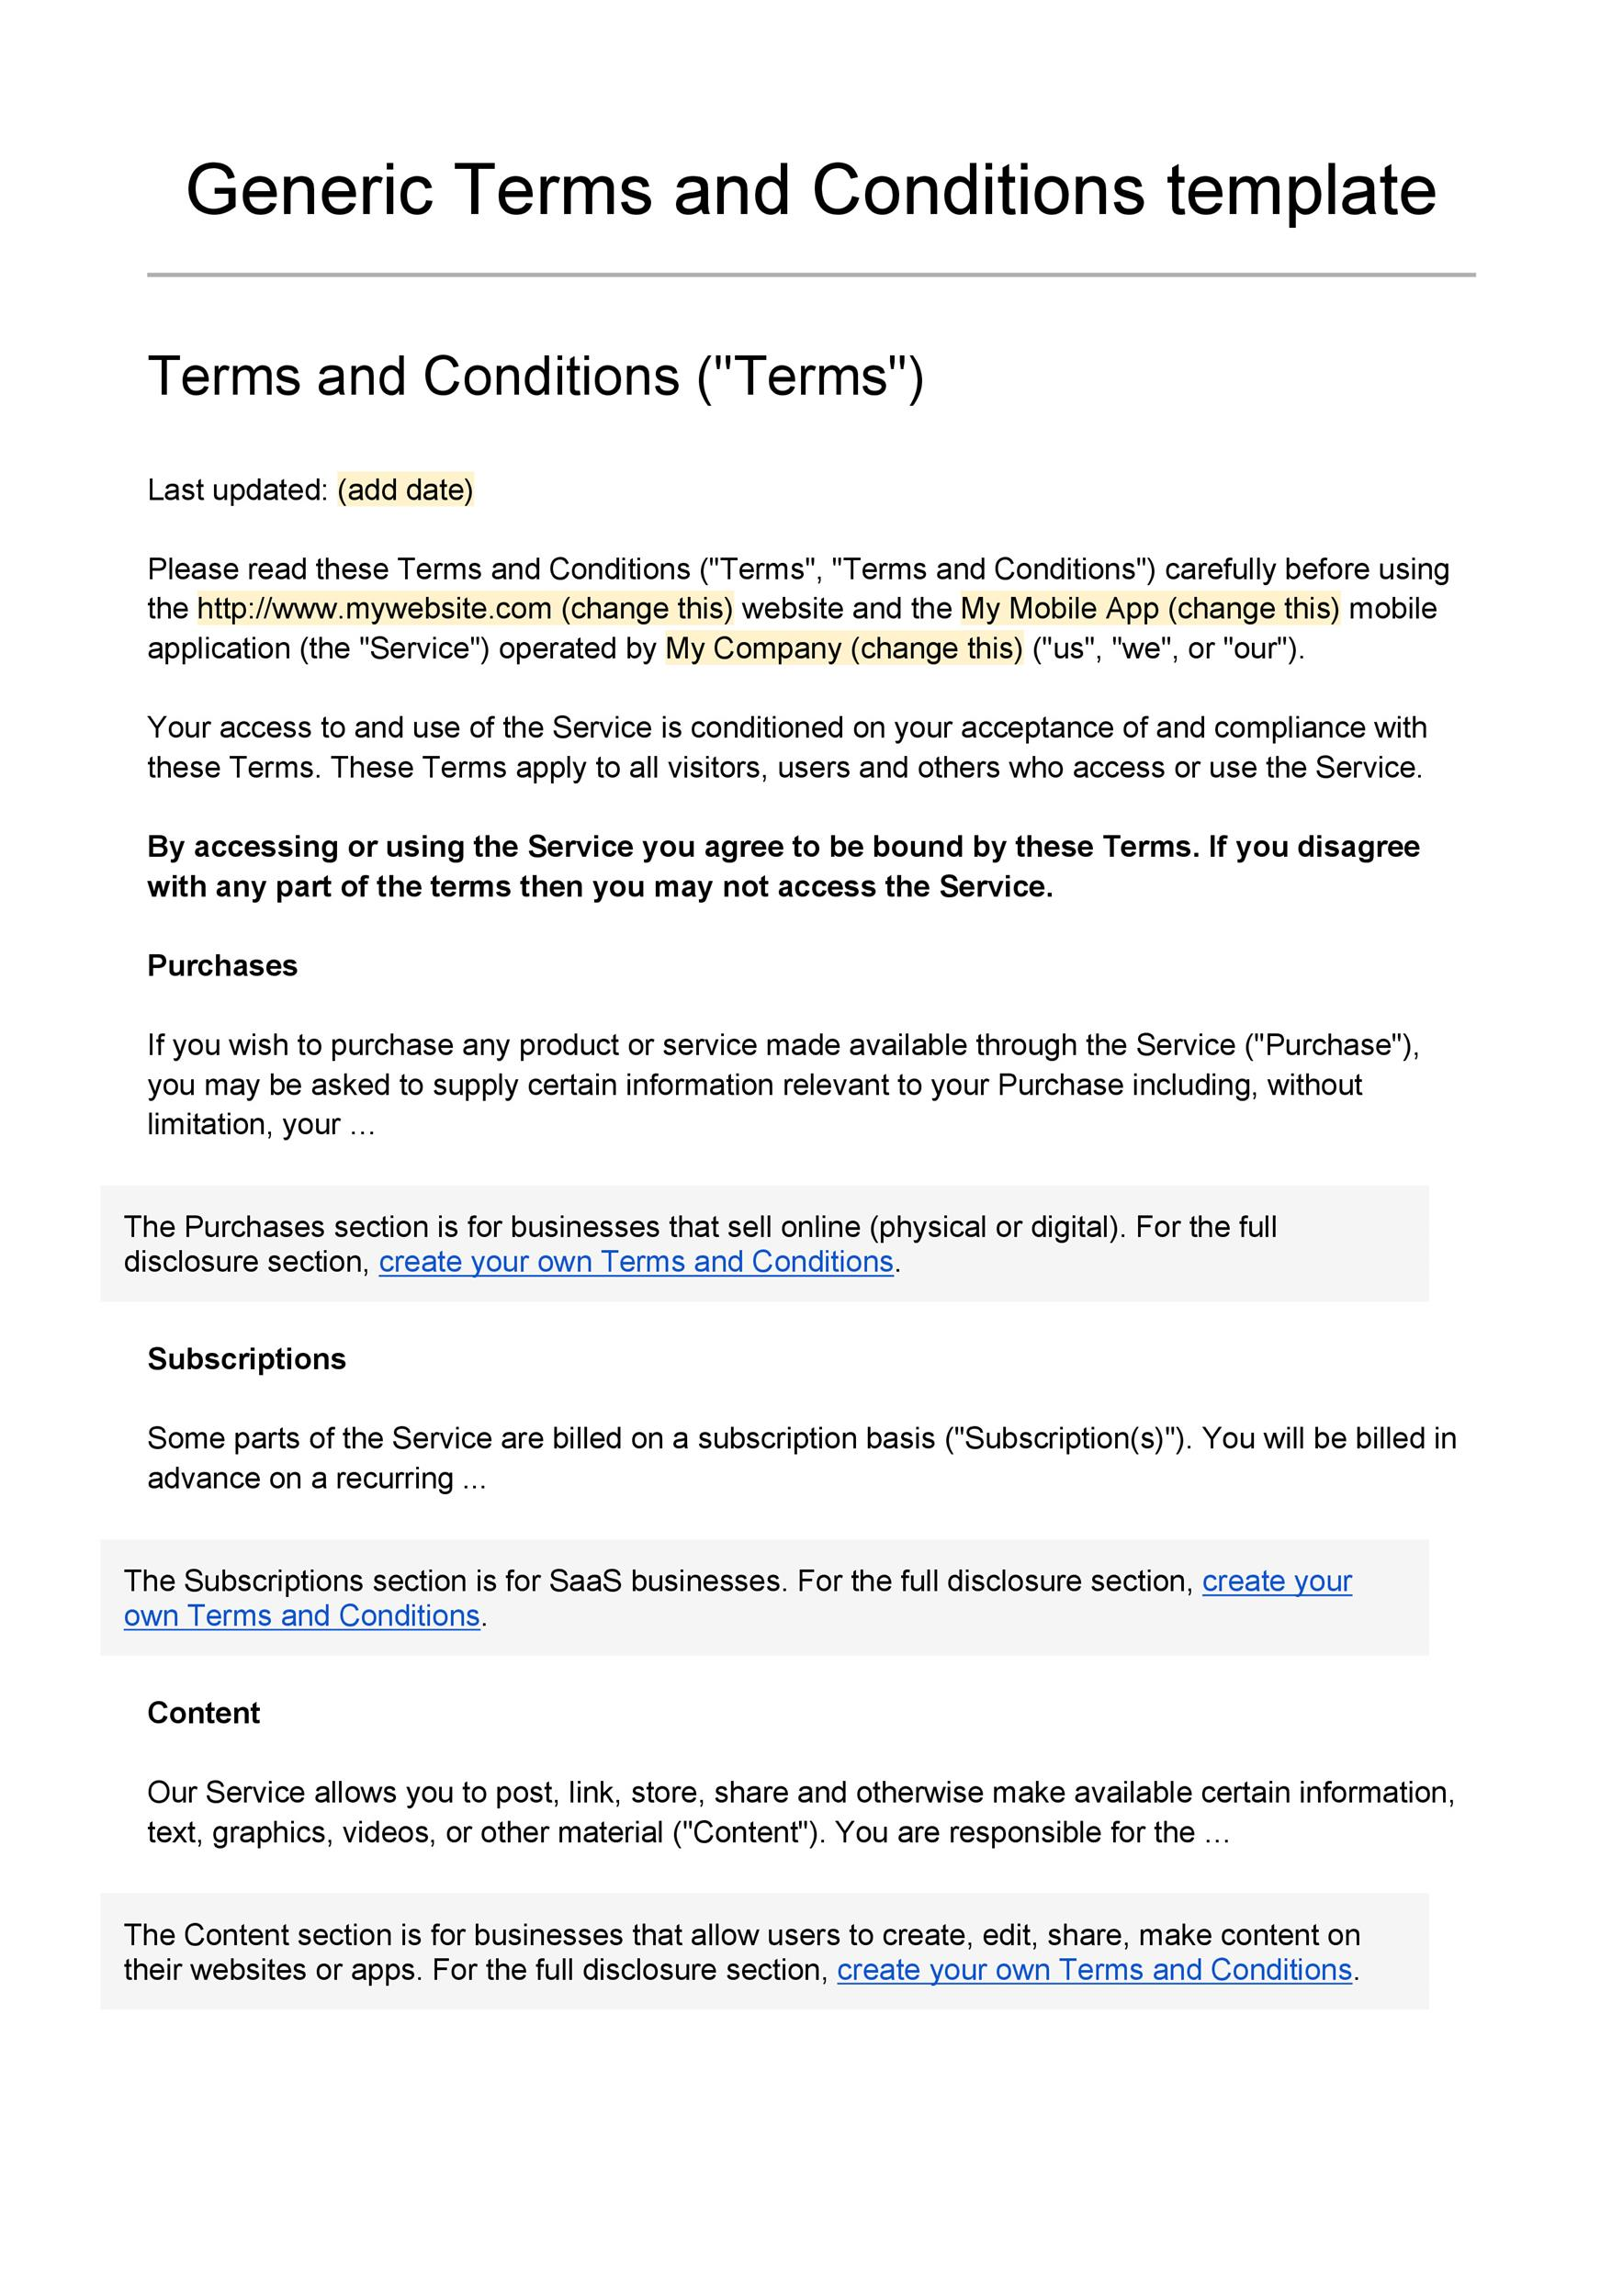 40 free terms and conditions templates for any website template lab.